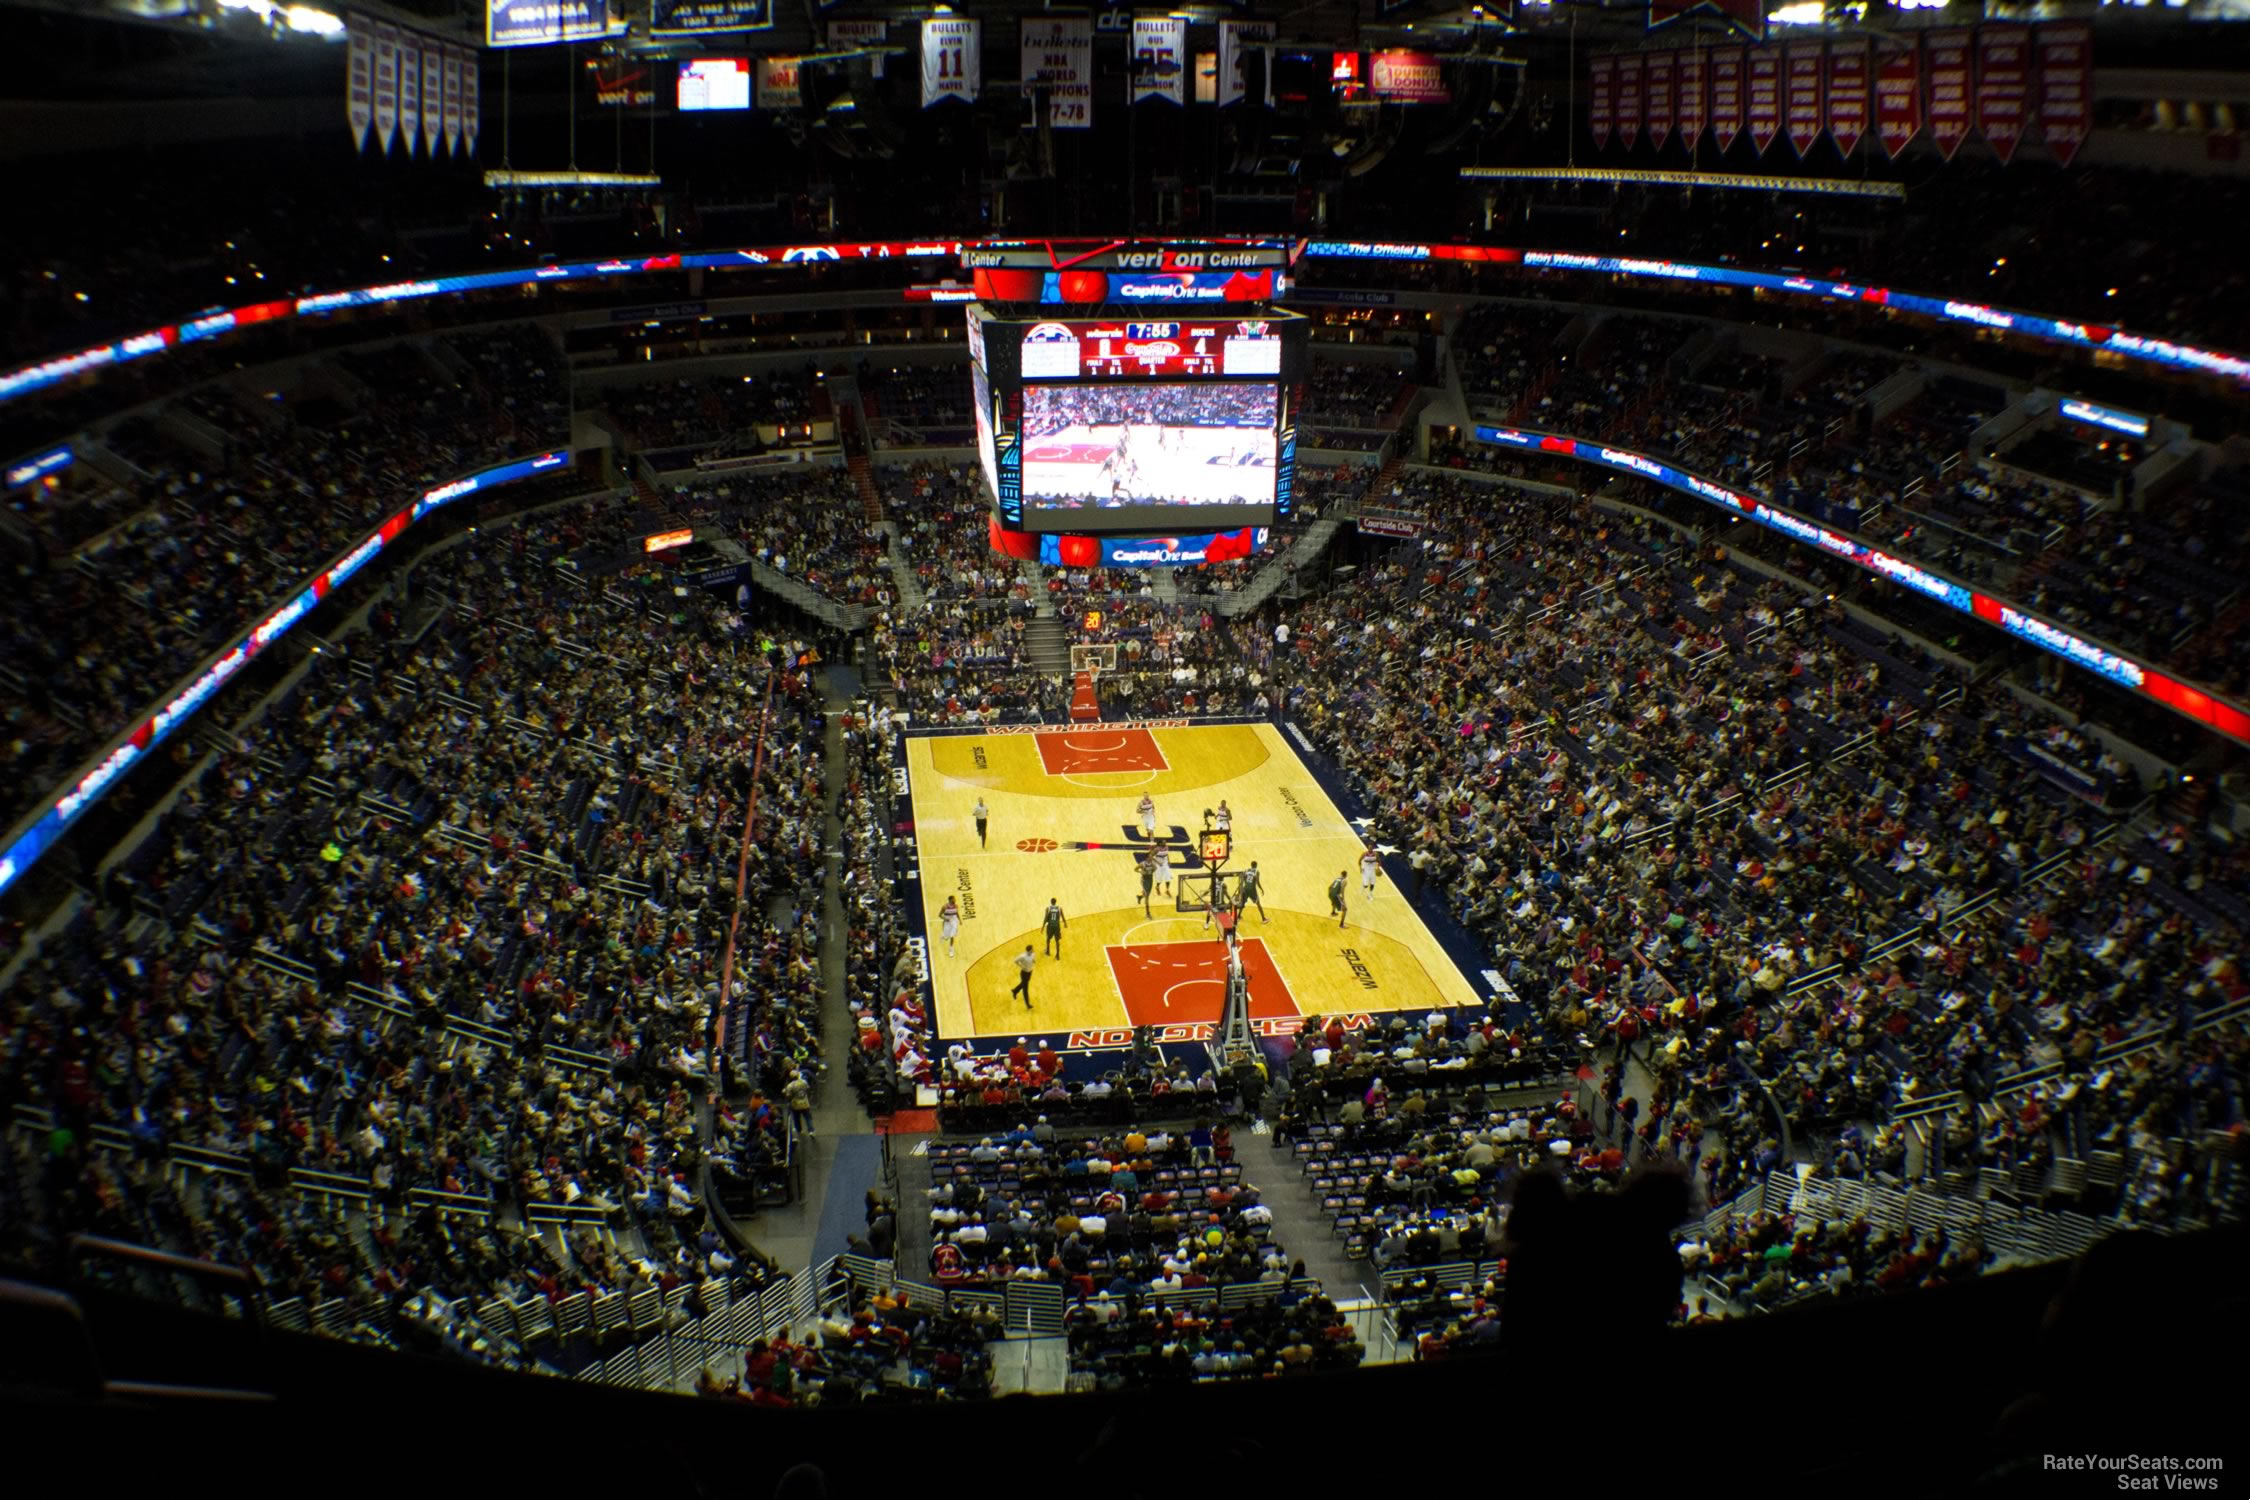 Capital One Arena Dc >> Capital One Arena Section 408 - Washington Wizards - RateYourSeats.com